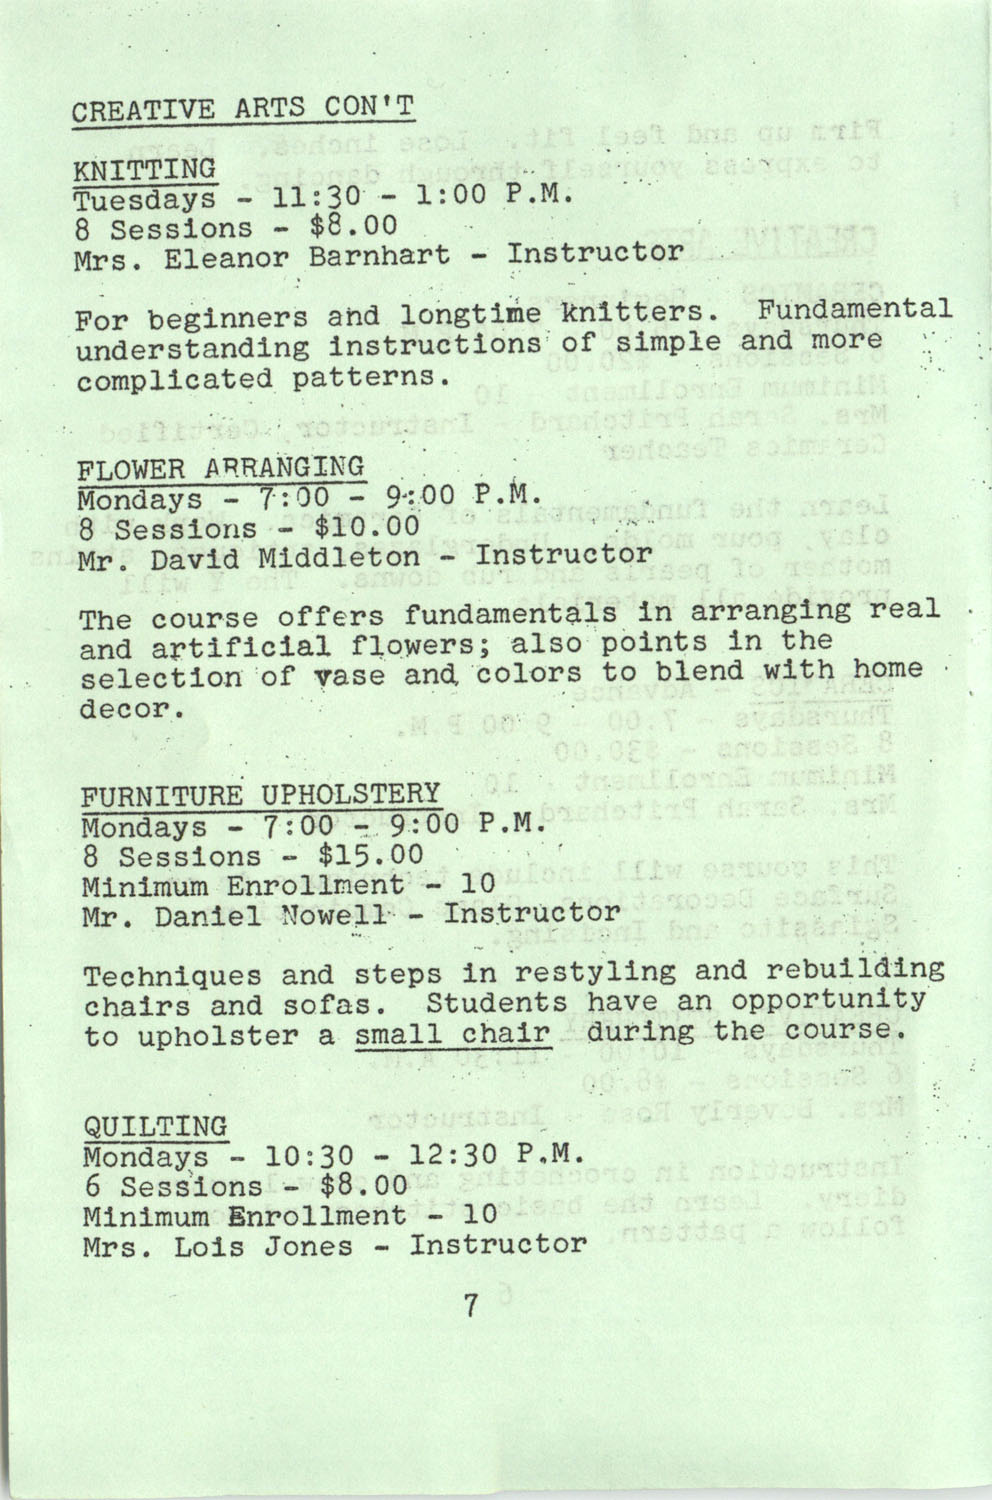 YWCA Spring 1975 Schedule, Page 7